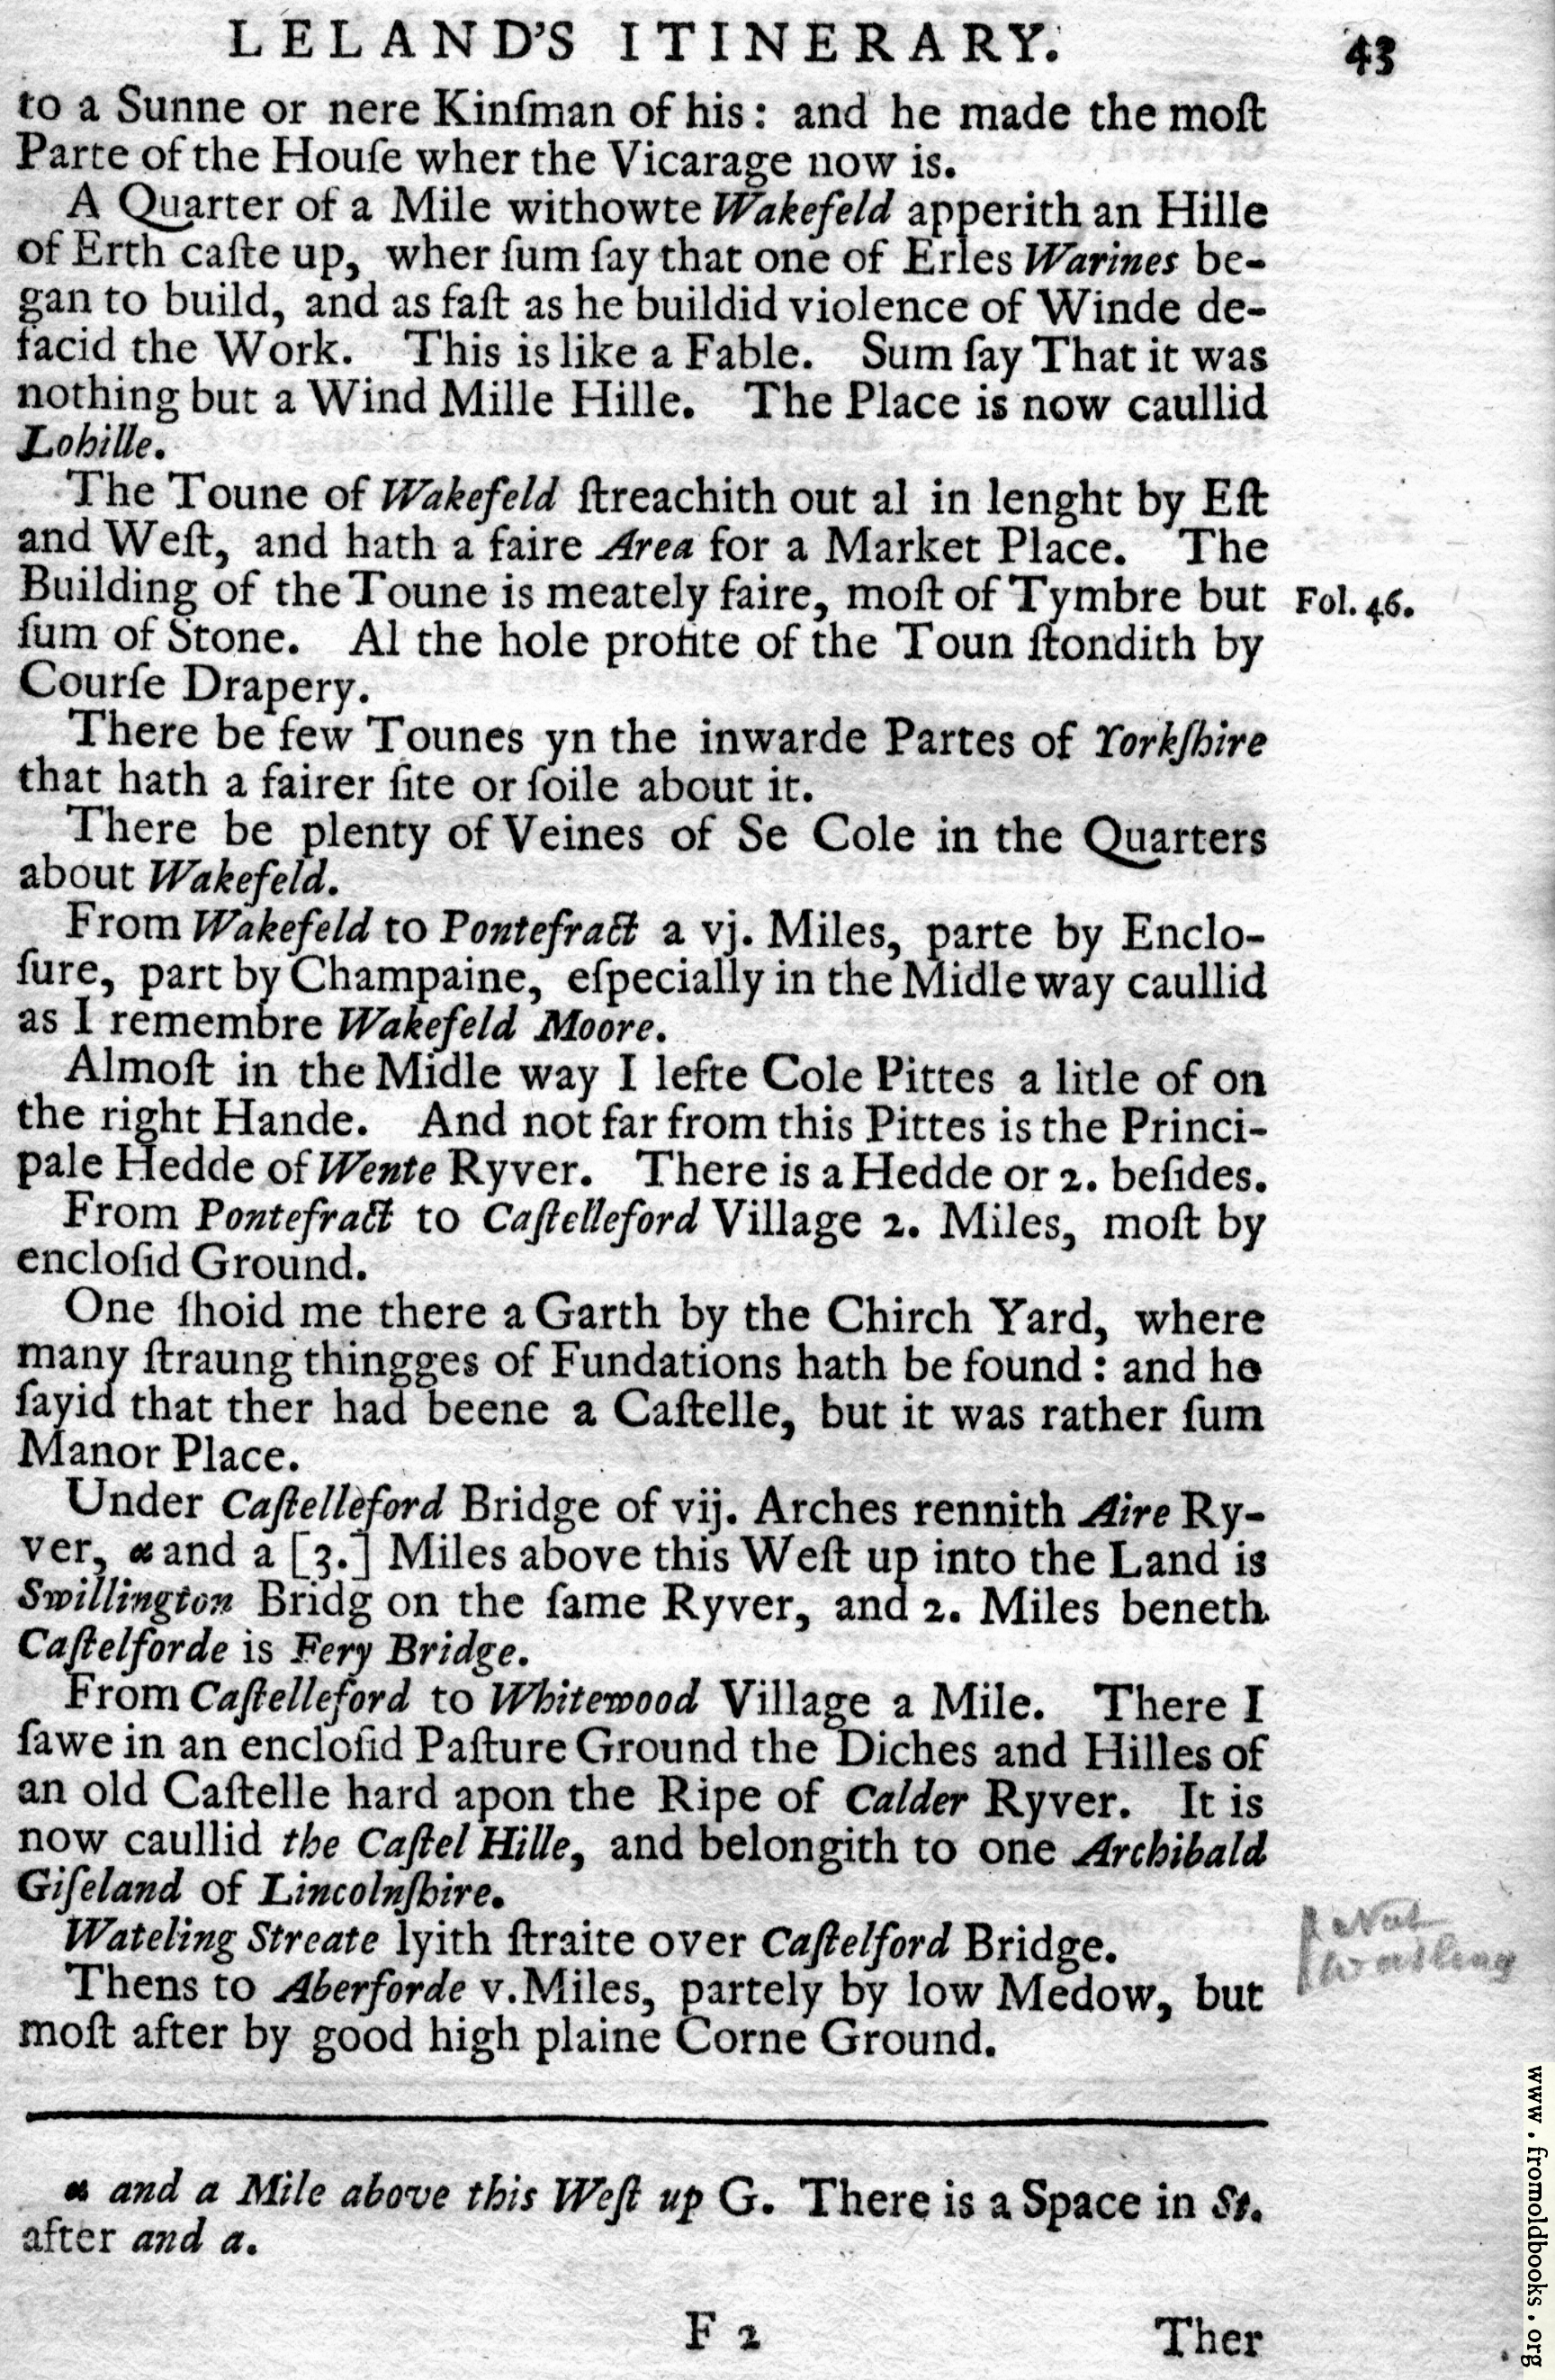 [Picture: Leland's Itinerary, Volume 1 Page 43]